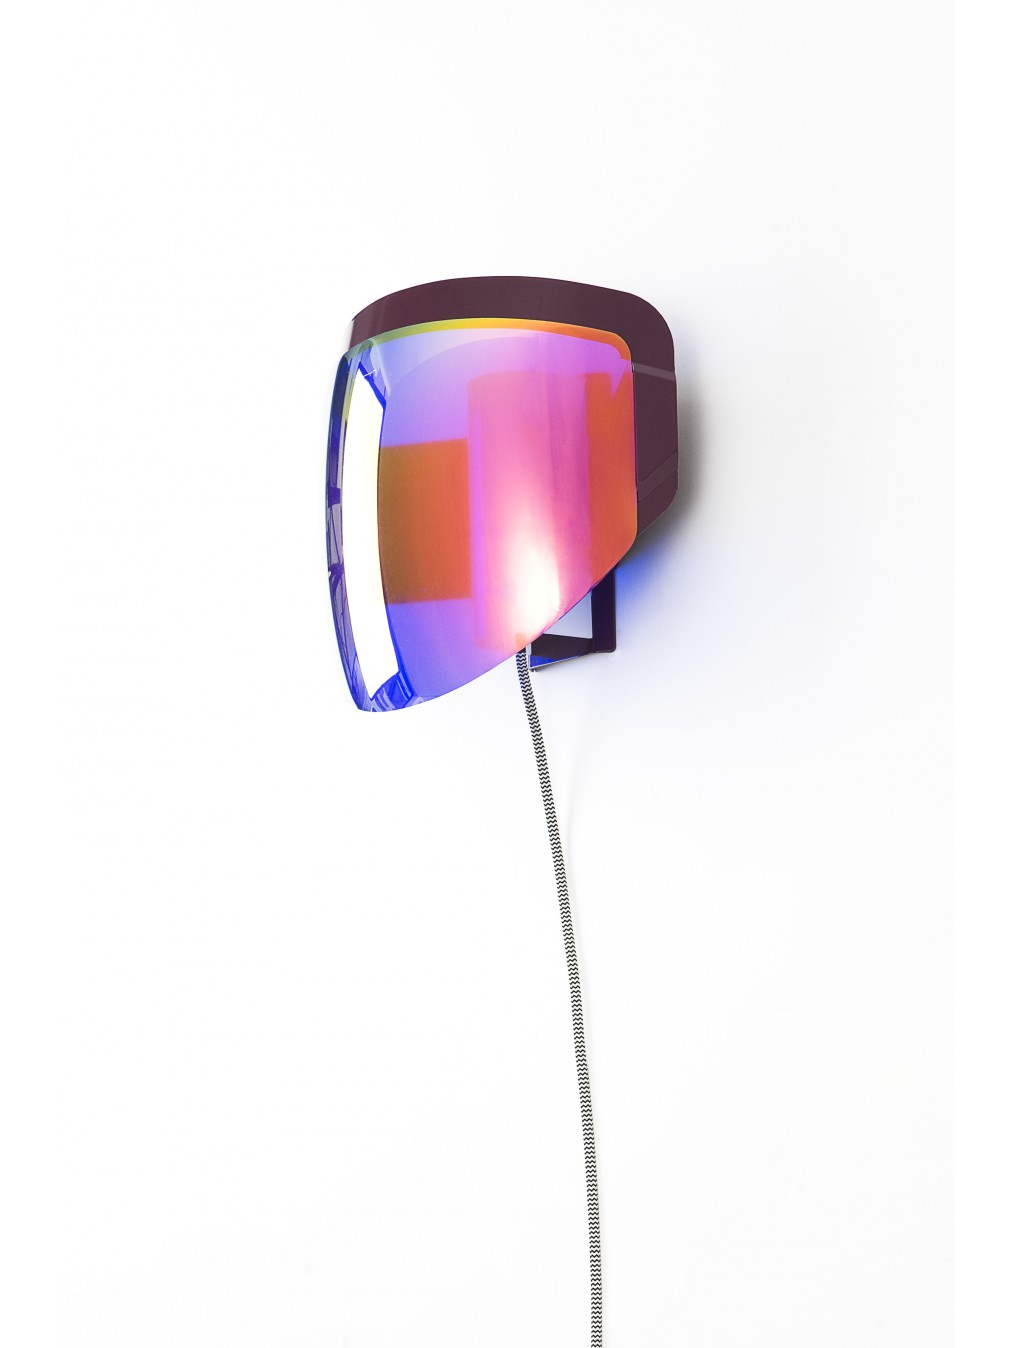 Wall lamps - Jean-Baptiste Fastrez - Moto wall lamp with plug - Moustache